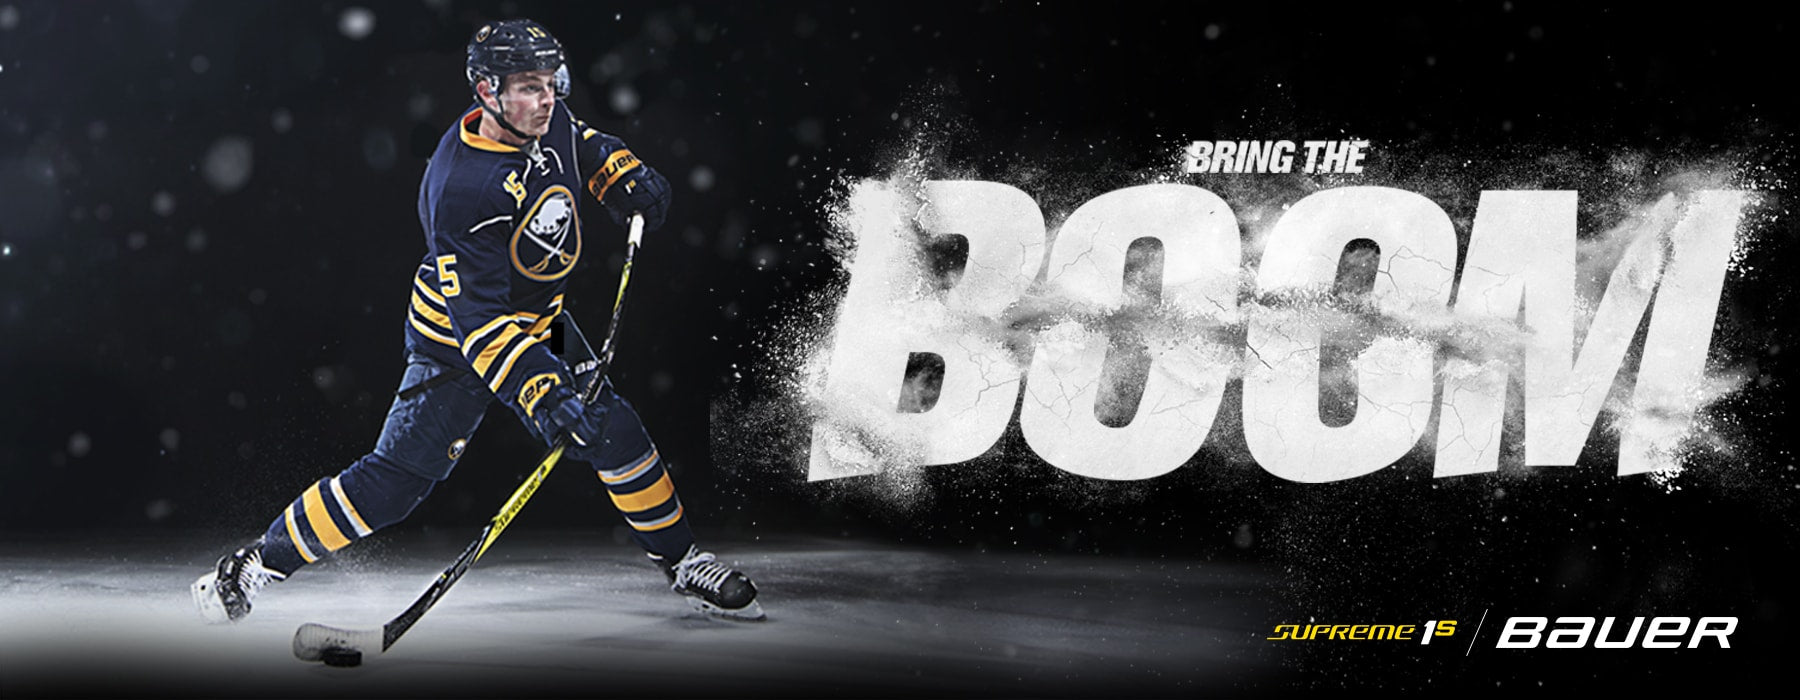 51c6fb325ac Owning The Moment is what Bauer strives to do. An innovator in the hockey  world